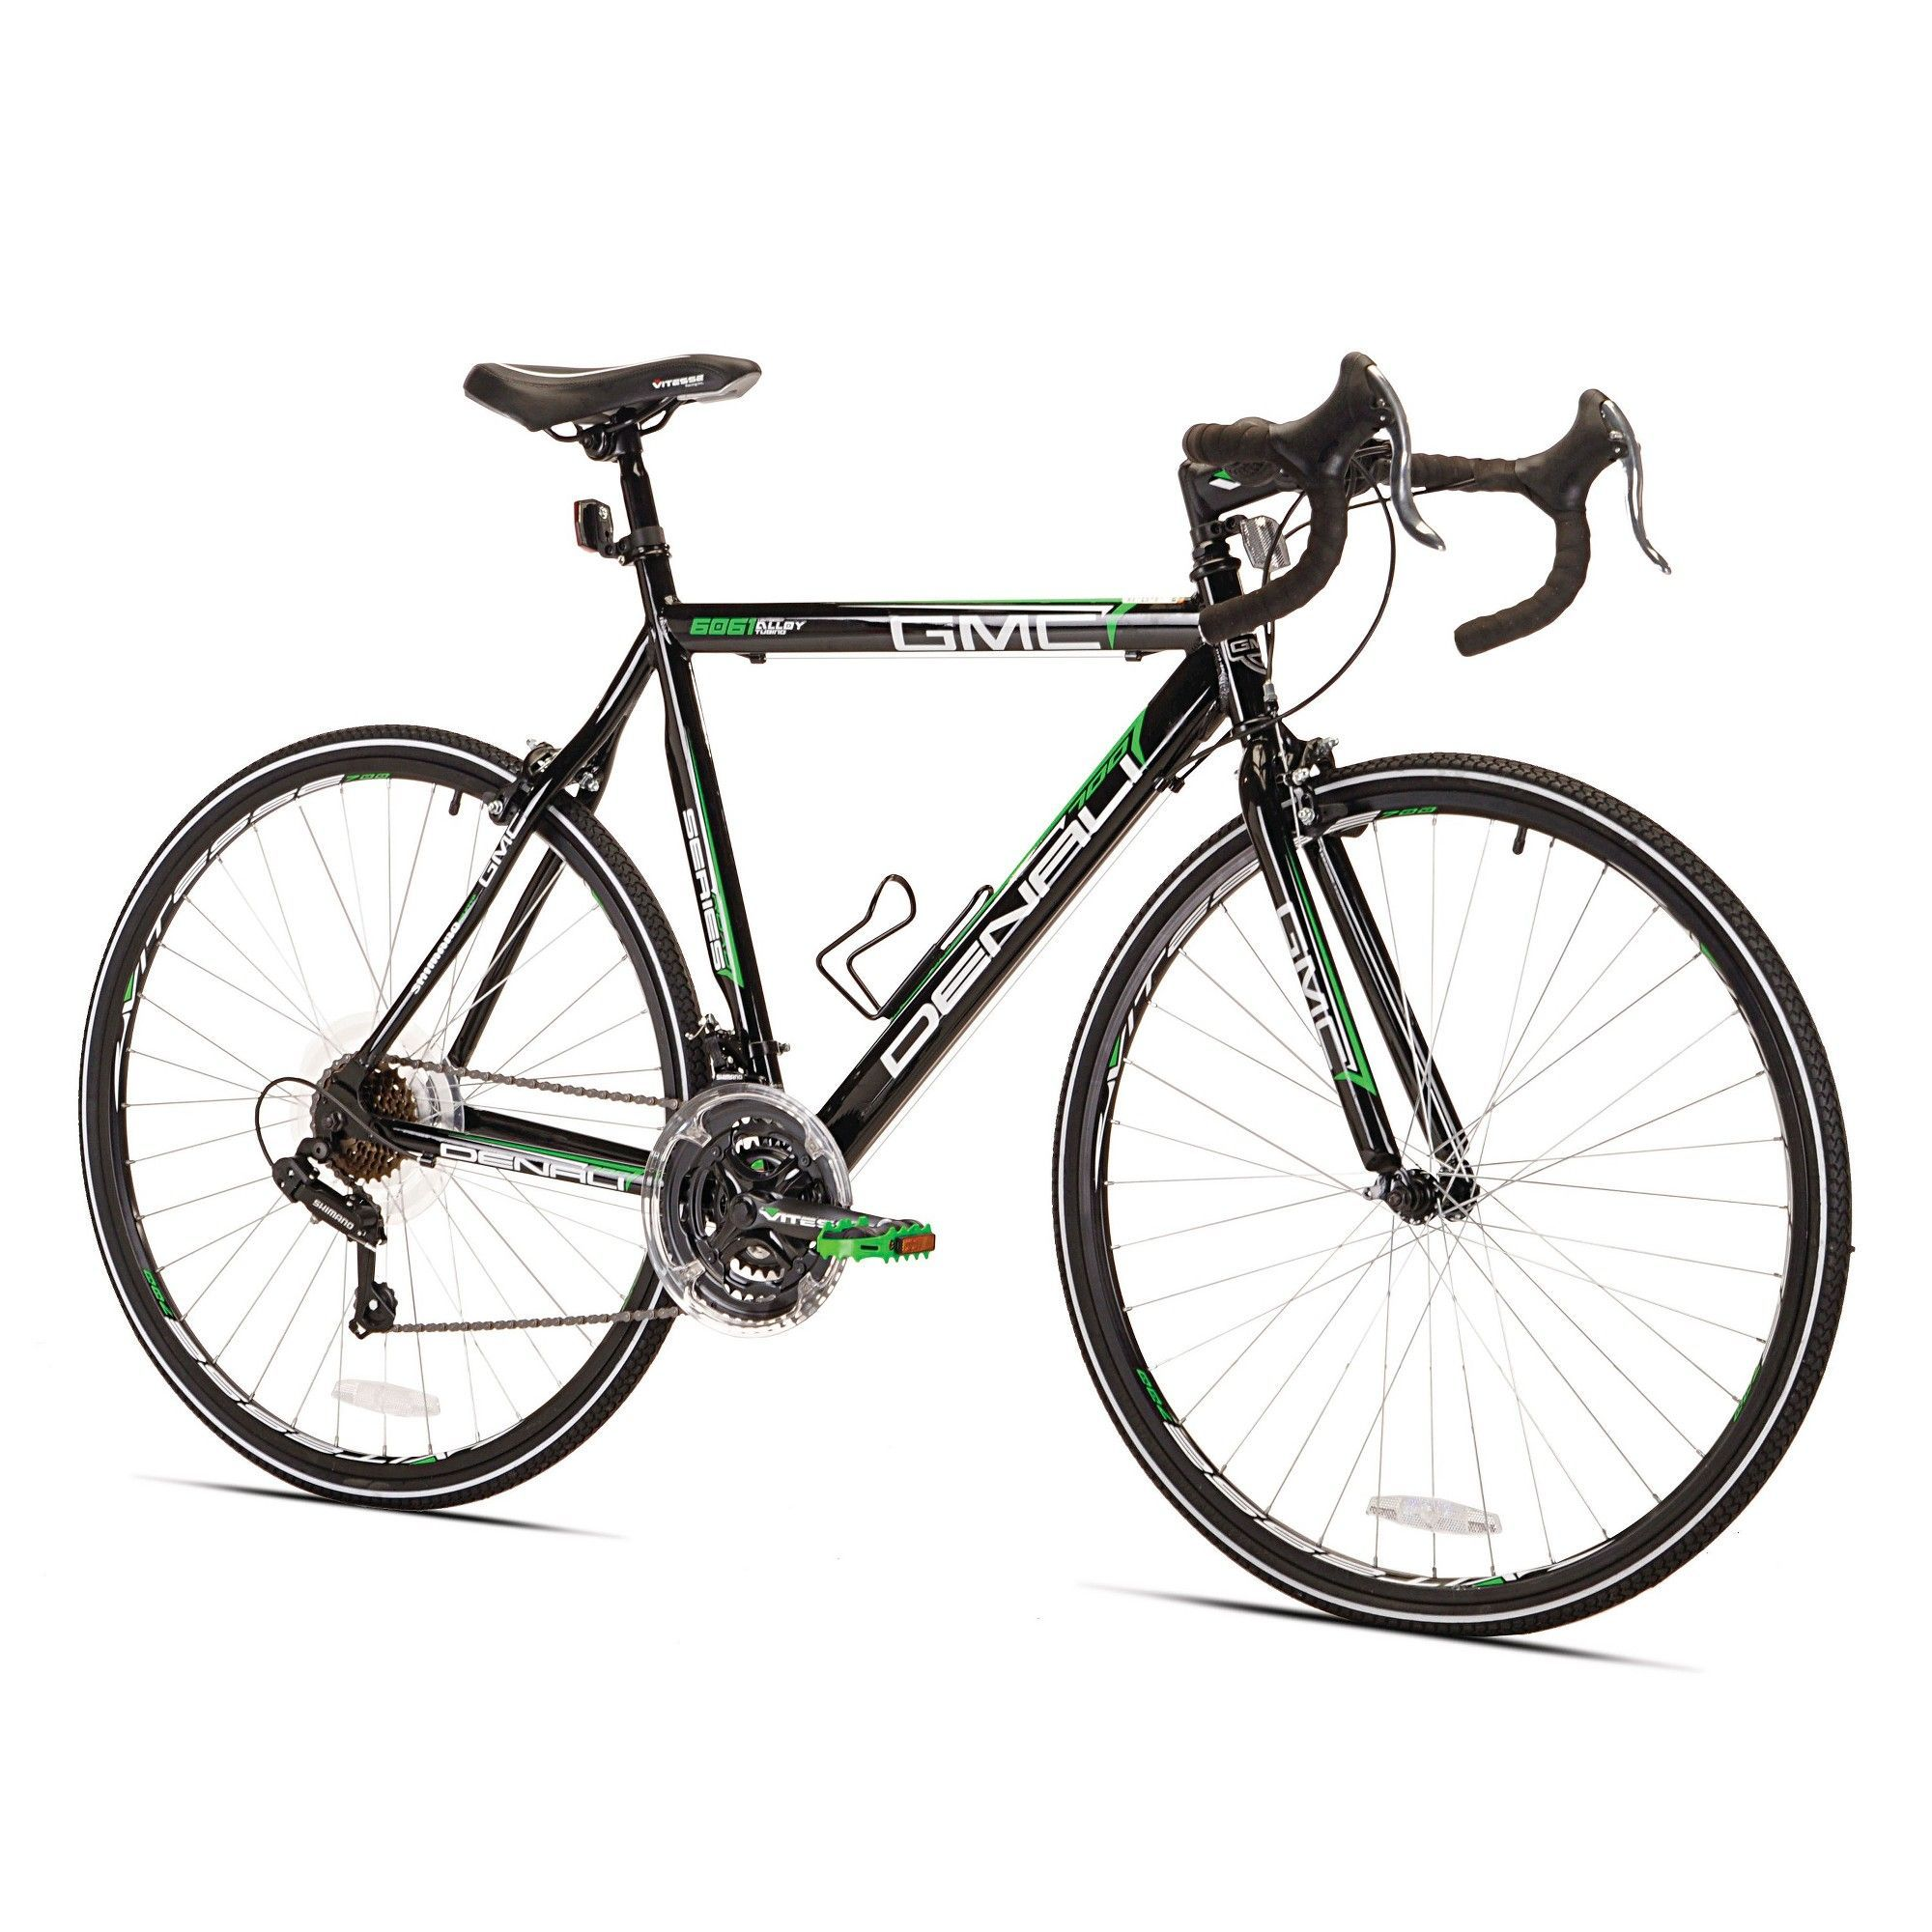 Gmc Men S Denali 28 700c Road Bike Black Green Flat Bar Road Bike City Bike Gmc Denali